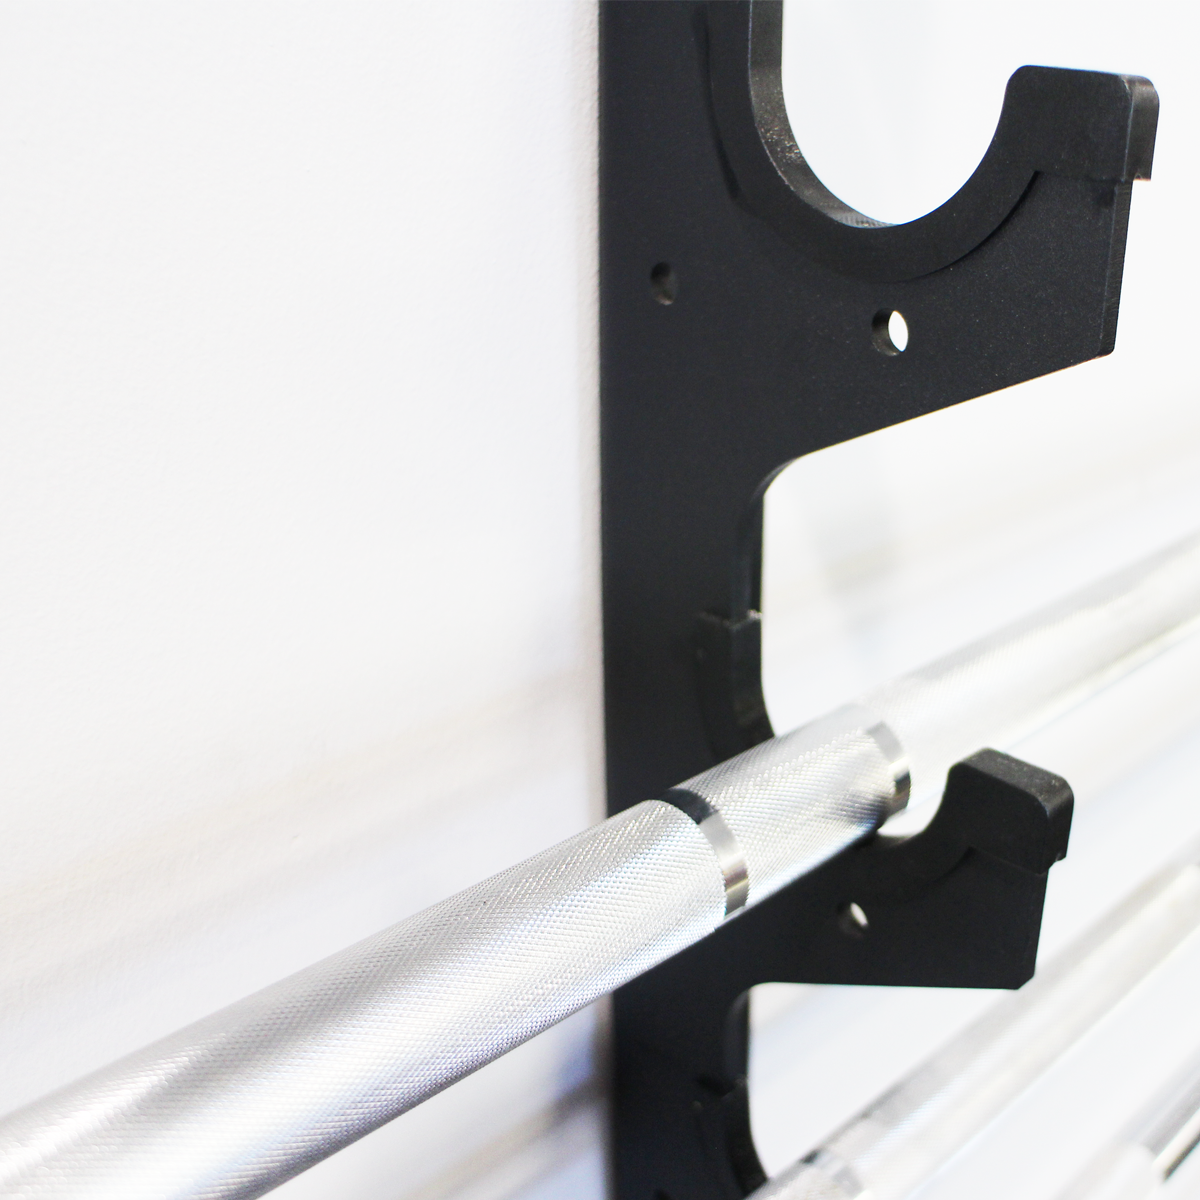 X Training Equipment® Gun Rack - 6 Barbell Horizontal Wall Mount - Pre-Order Now - ETA 1/5